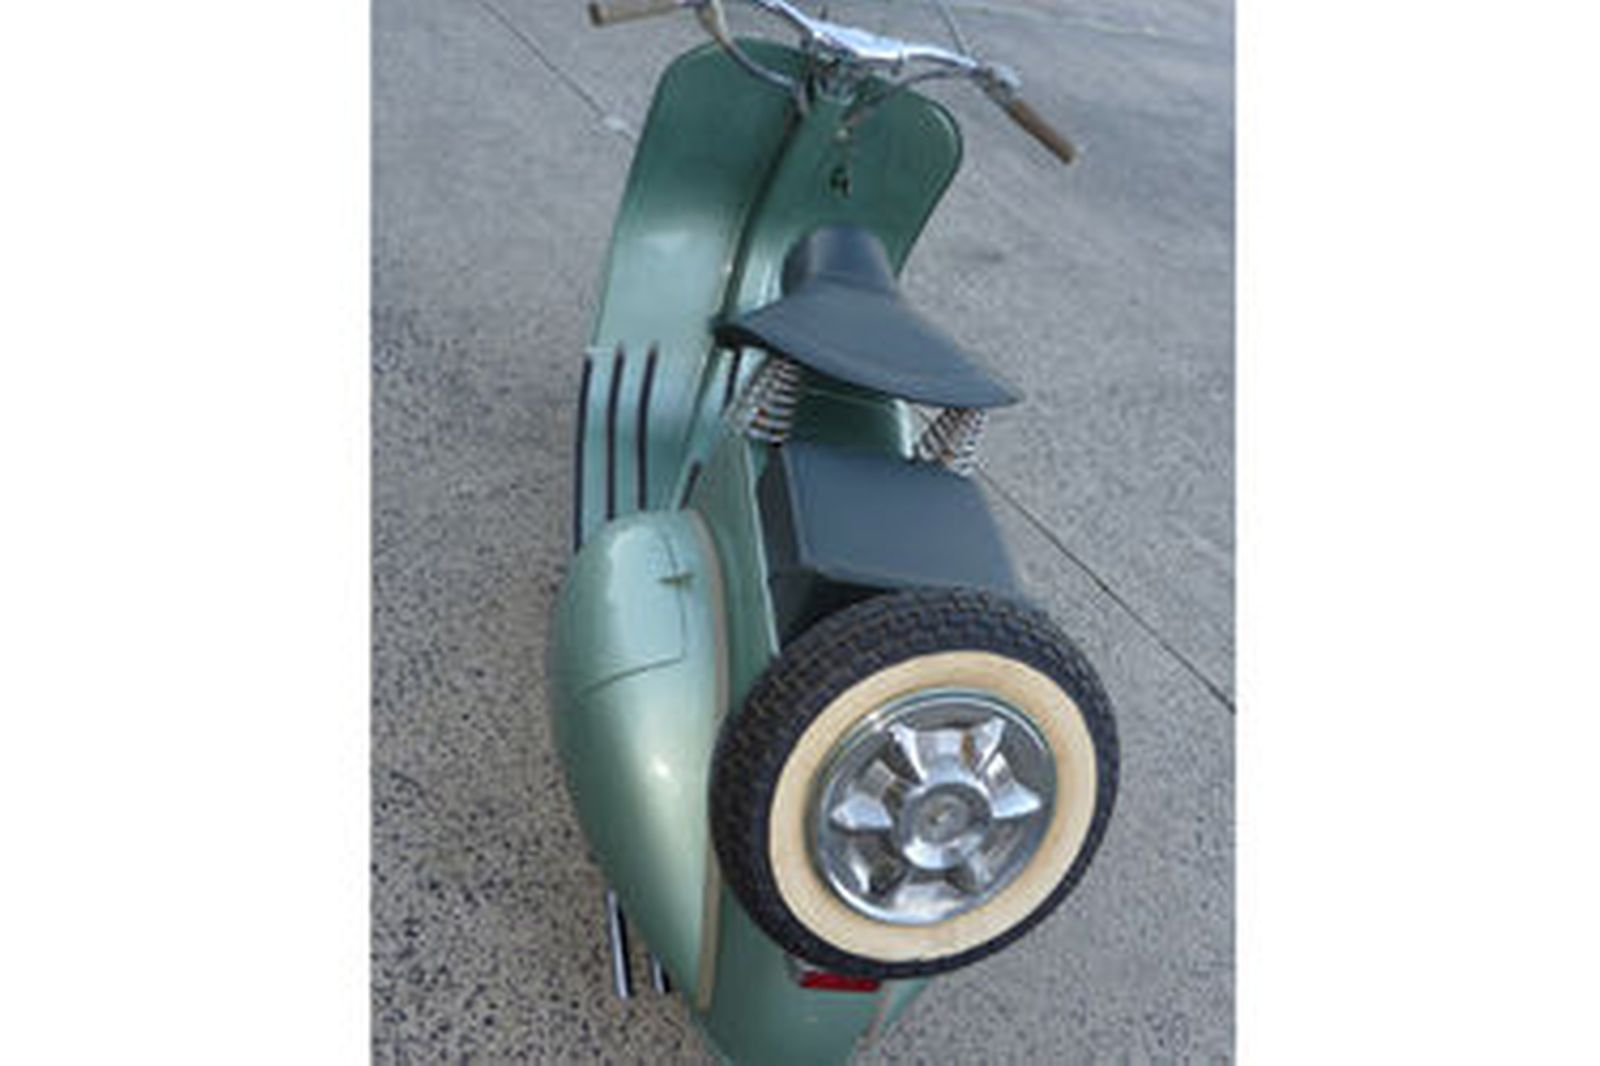 Vespa 125 'Fenderlight' Scooter